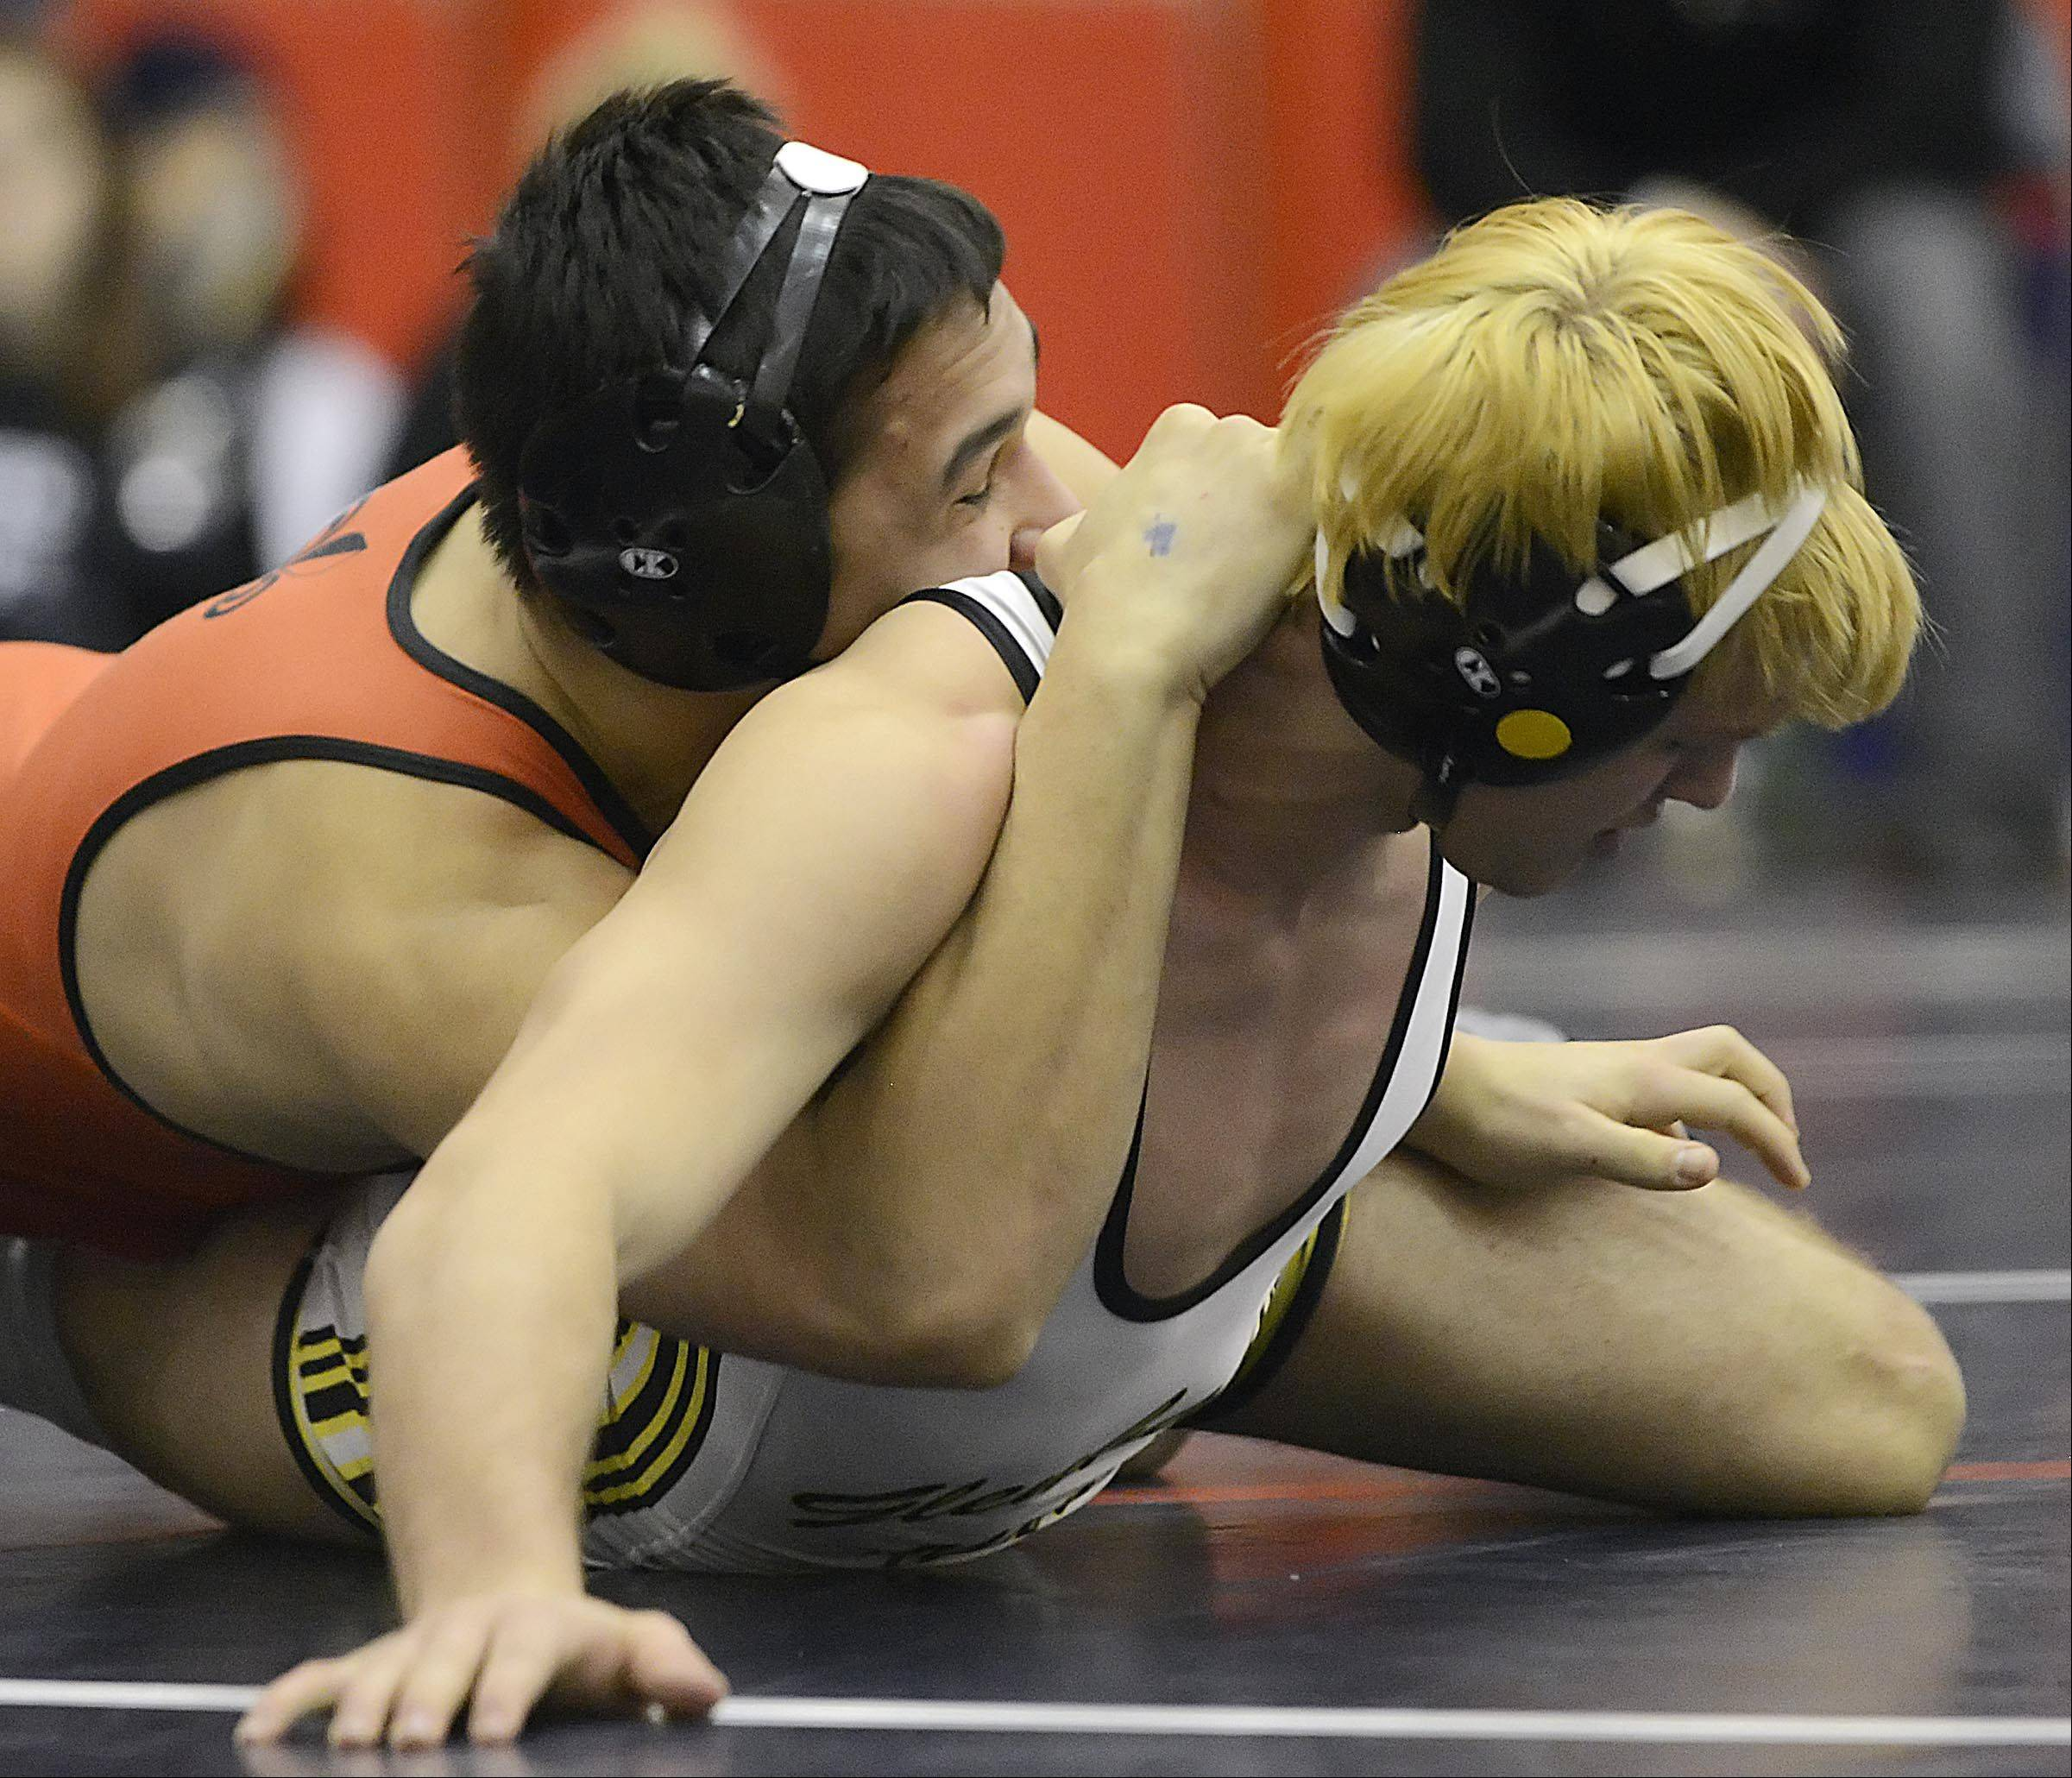 St. Charles East's Keone Derain tries a half nelson on Glenbard North's Anthony DePrima in the 152-pound weight class Saturday at the South Elgin regional wrestling tournament. Keone won the title by fall.